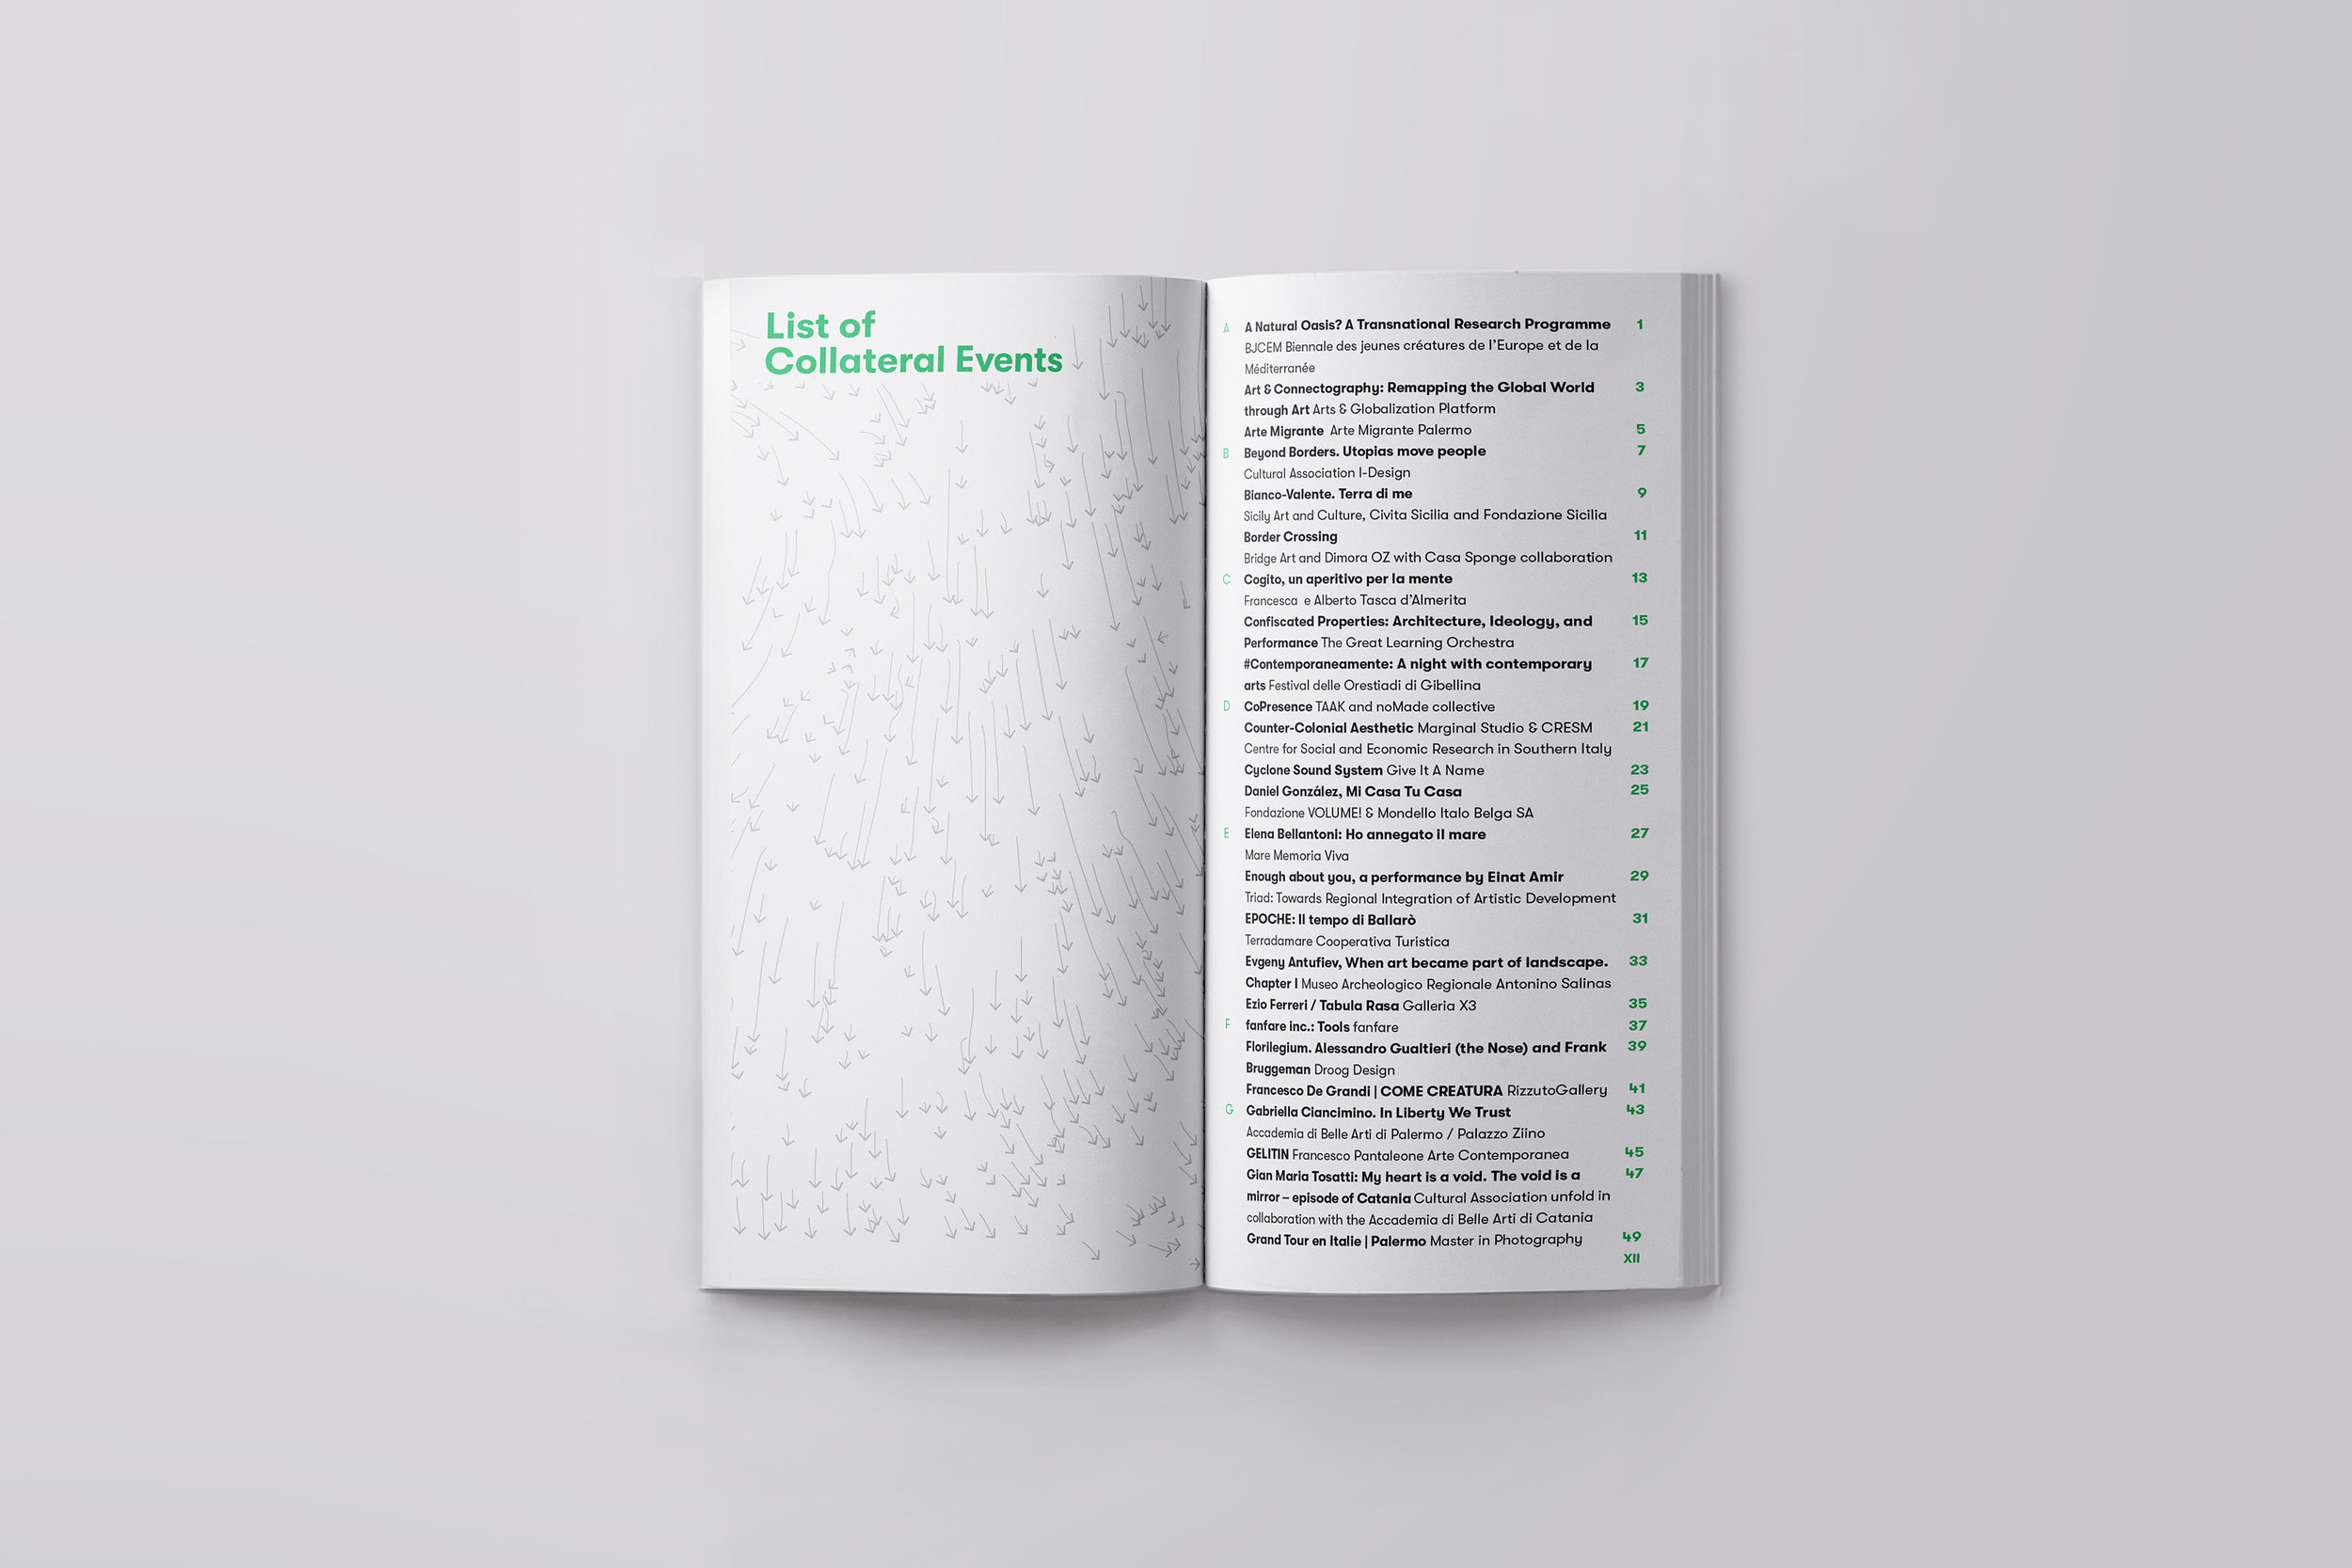 M12 Collateral Events_BROCHURE - Lists of collateral events.jpg